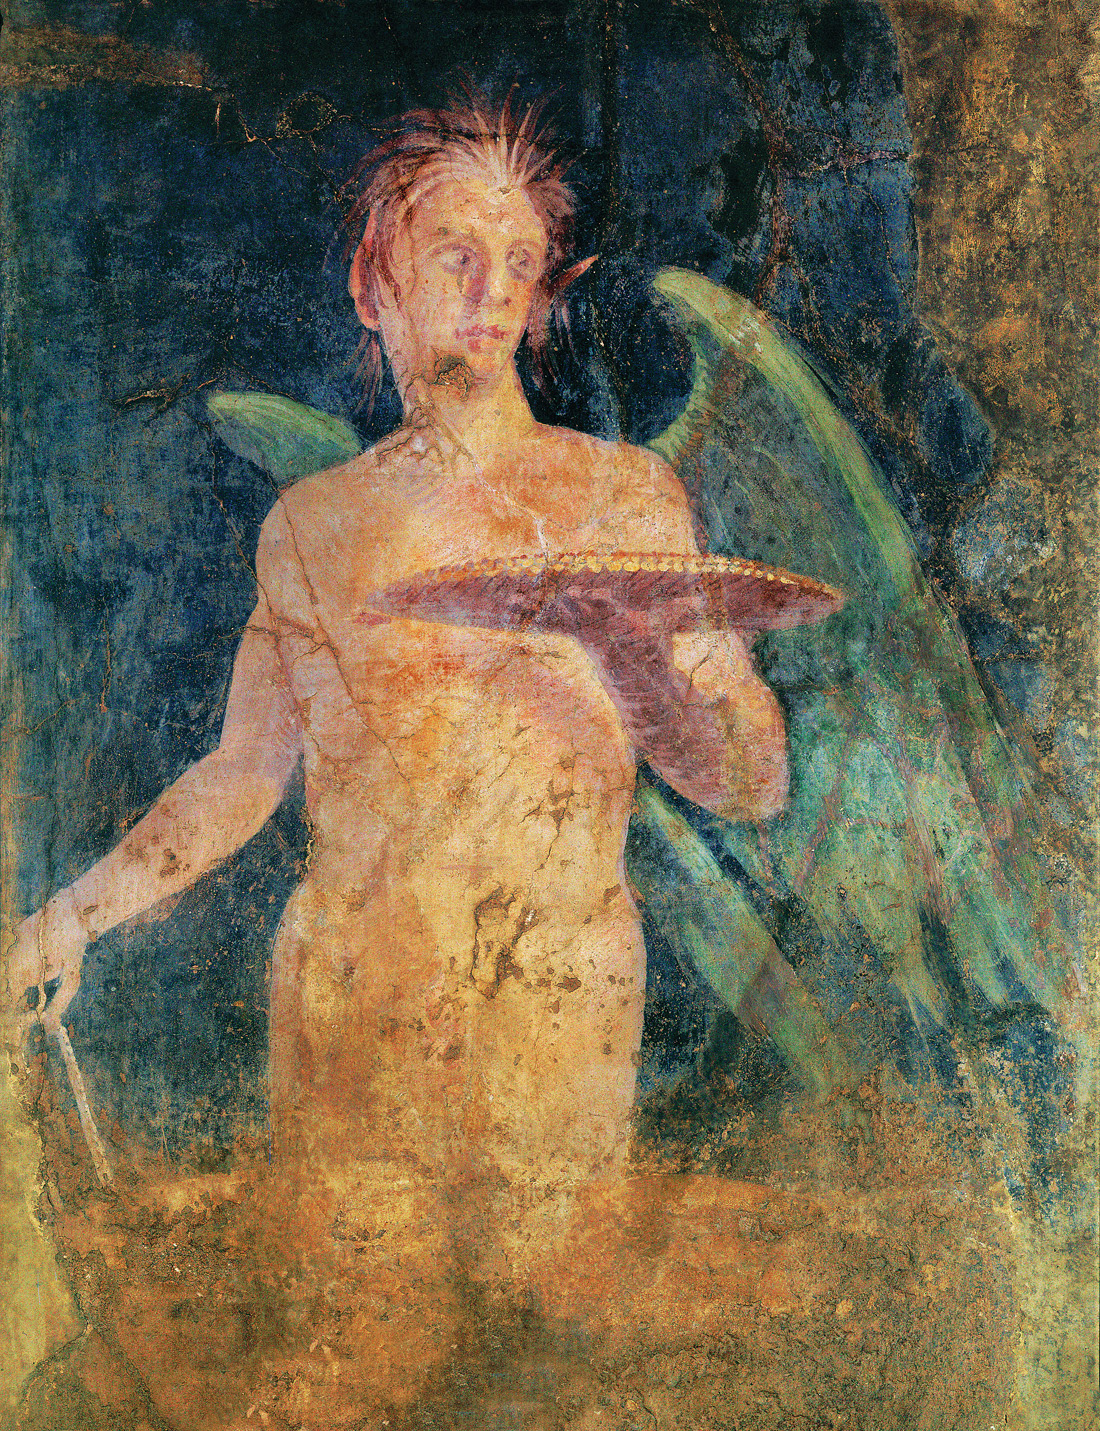 Winged Genius, fresco in Boscoreale, Italy, first century BC. Louvre Museum, Paris, France.